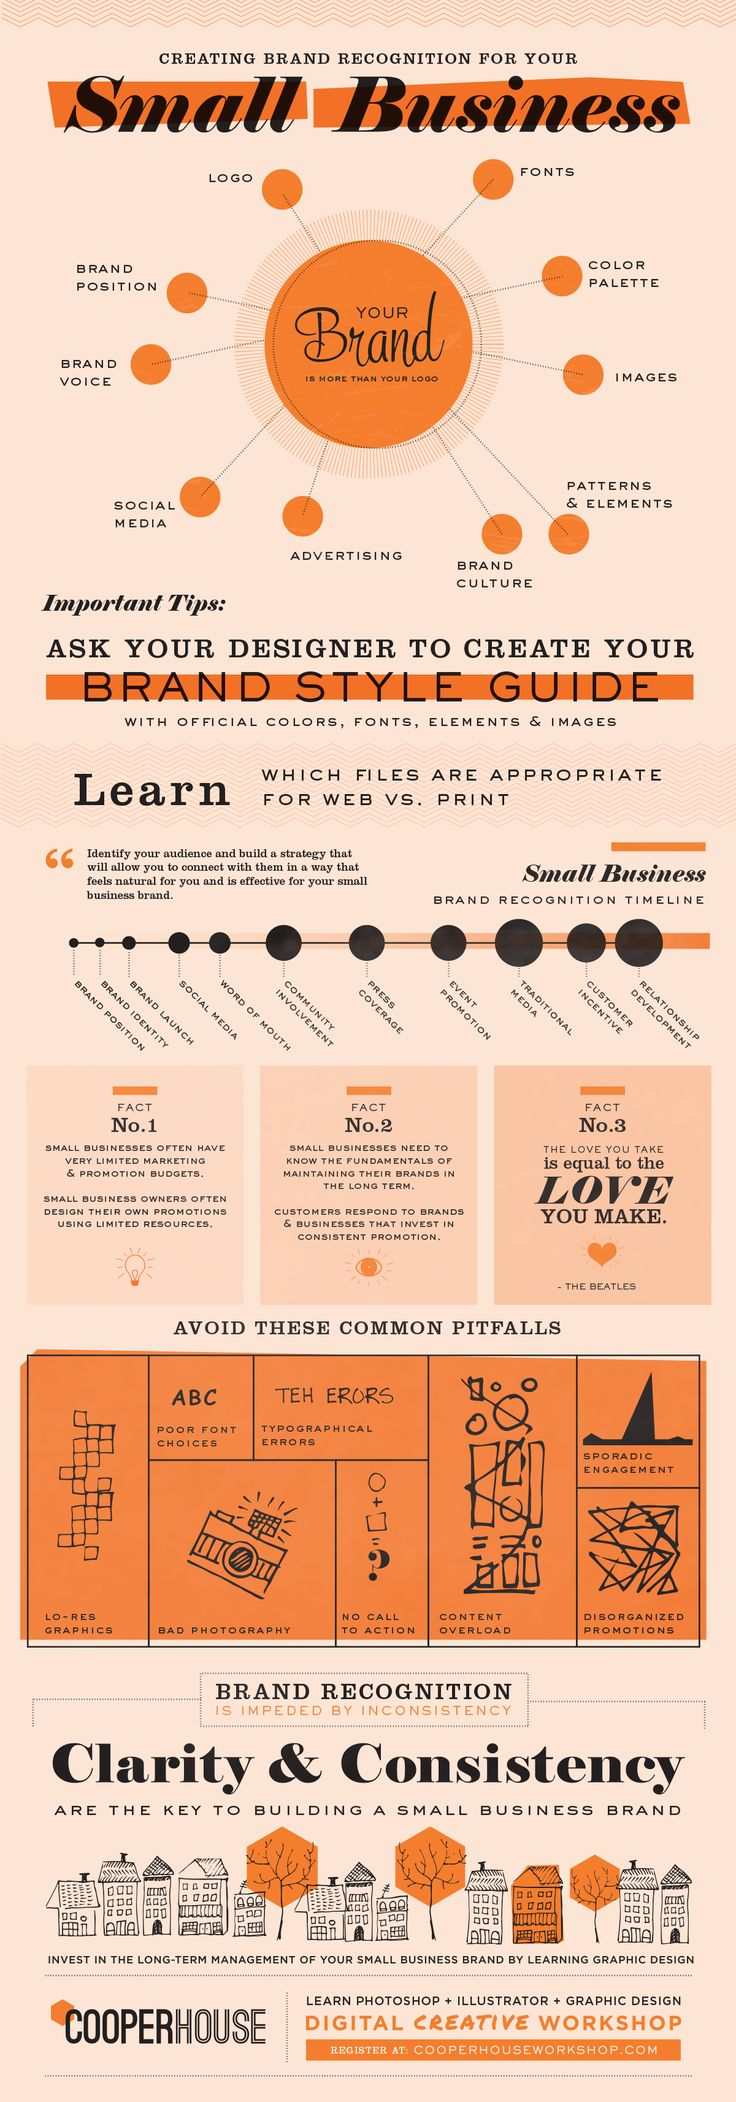 Cooper House - Brand Recognition for SMB #smb #brand